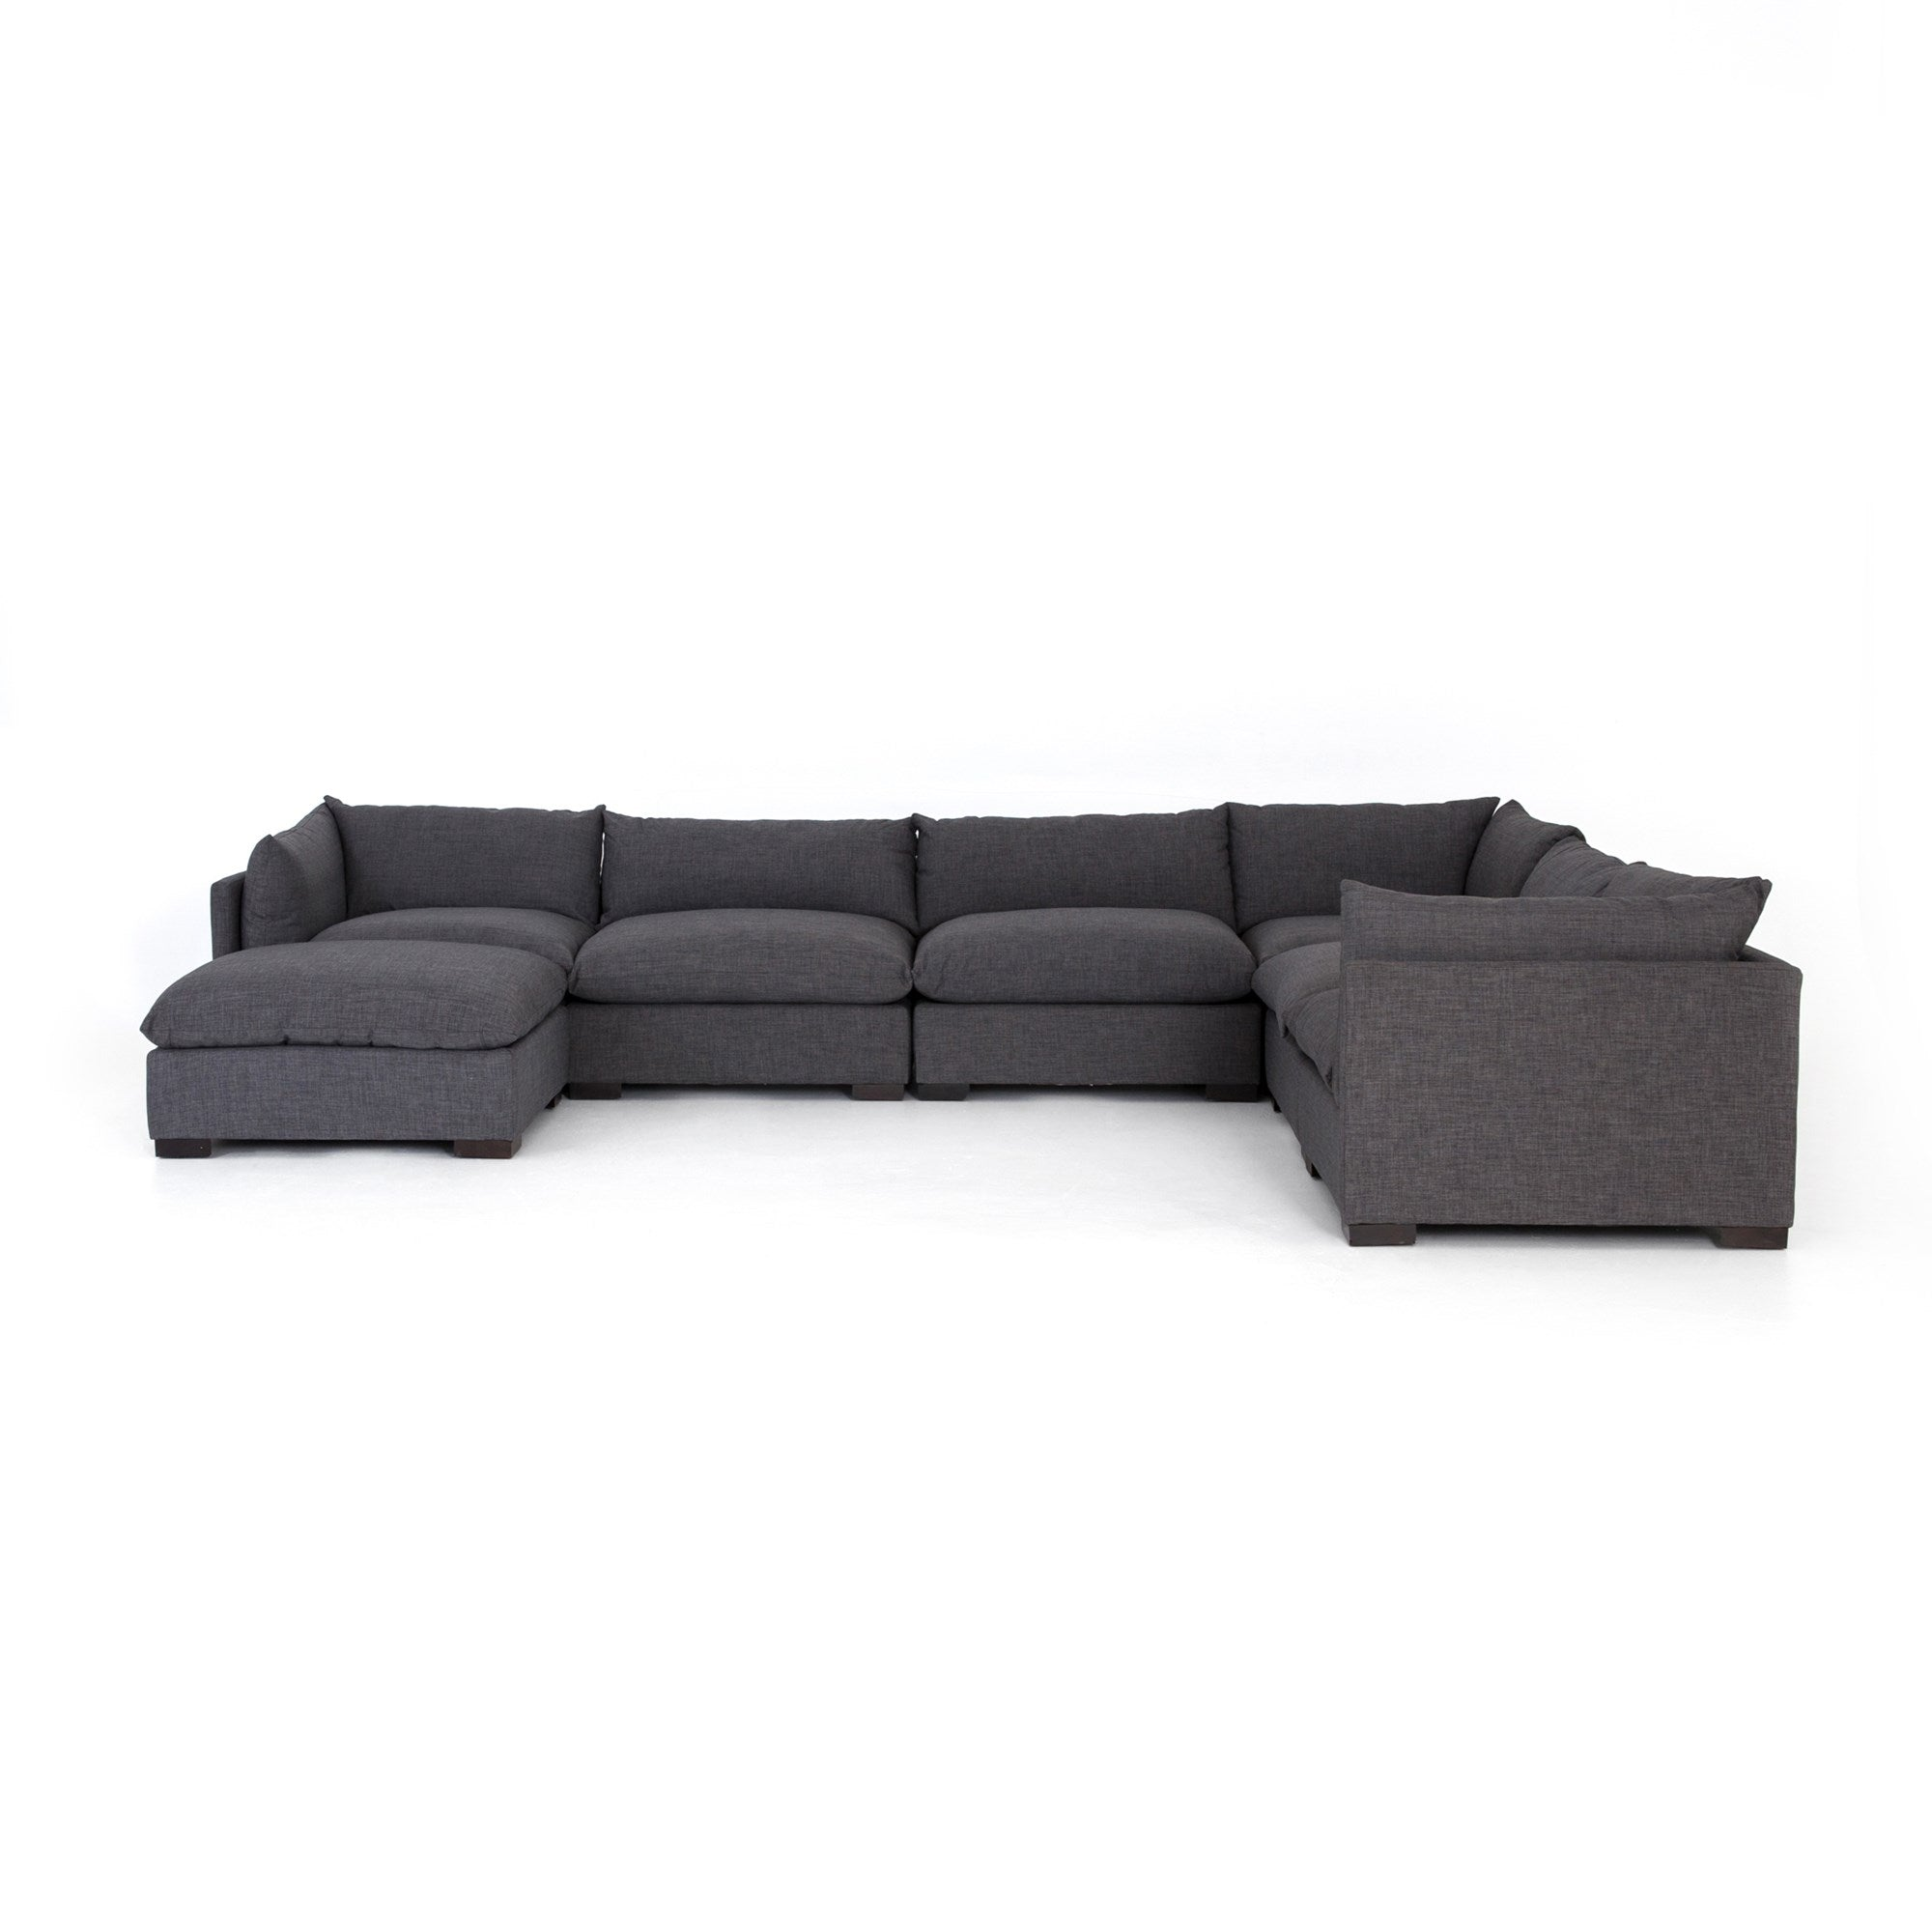 Westwood 6 Piece Sectional with Ottoman